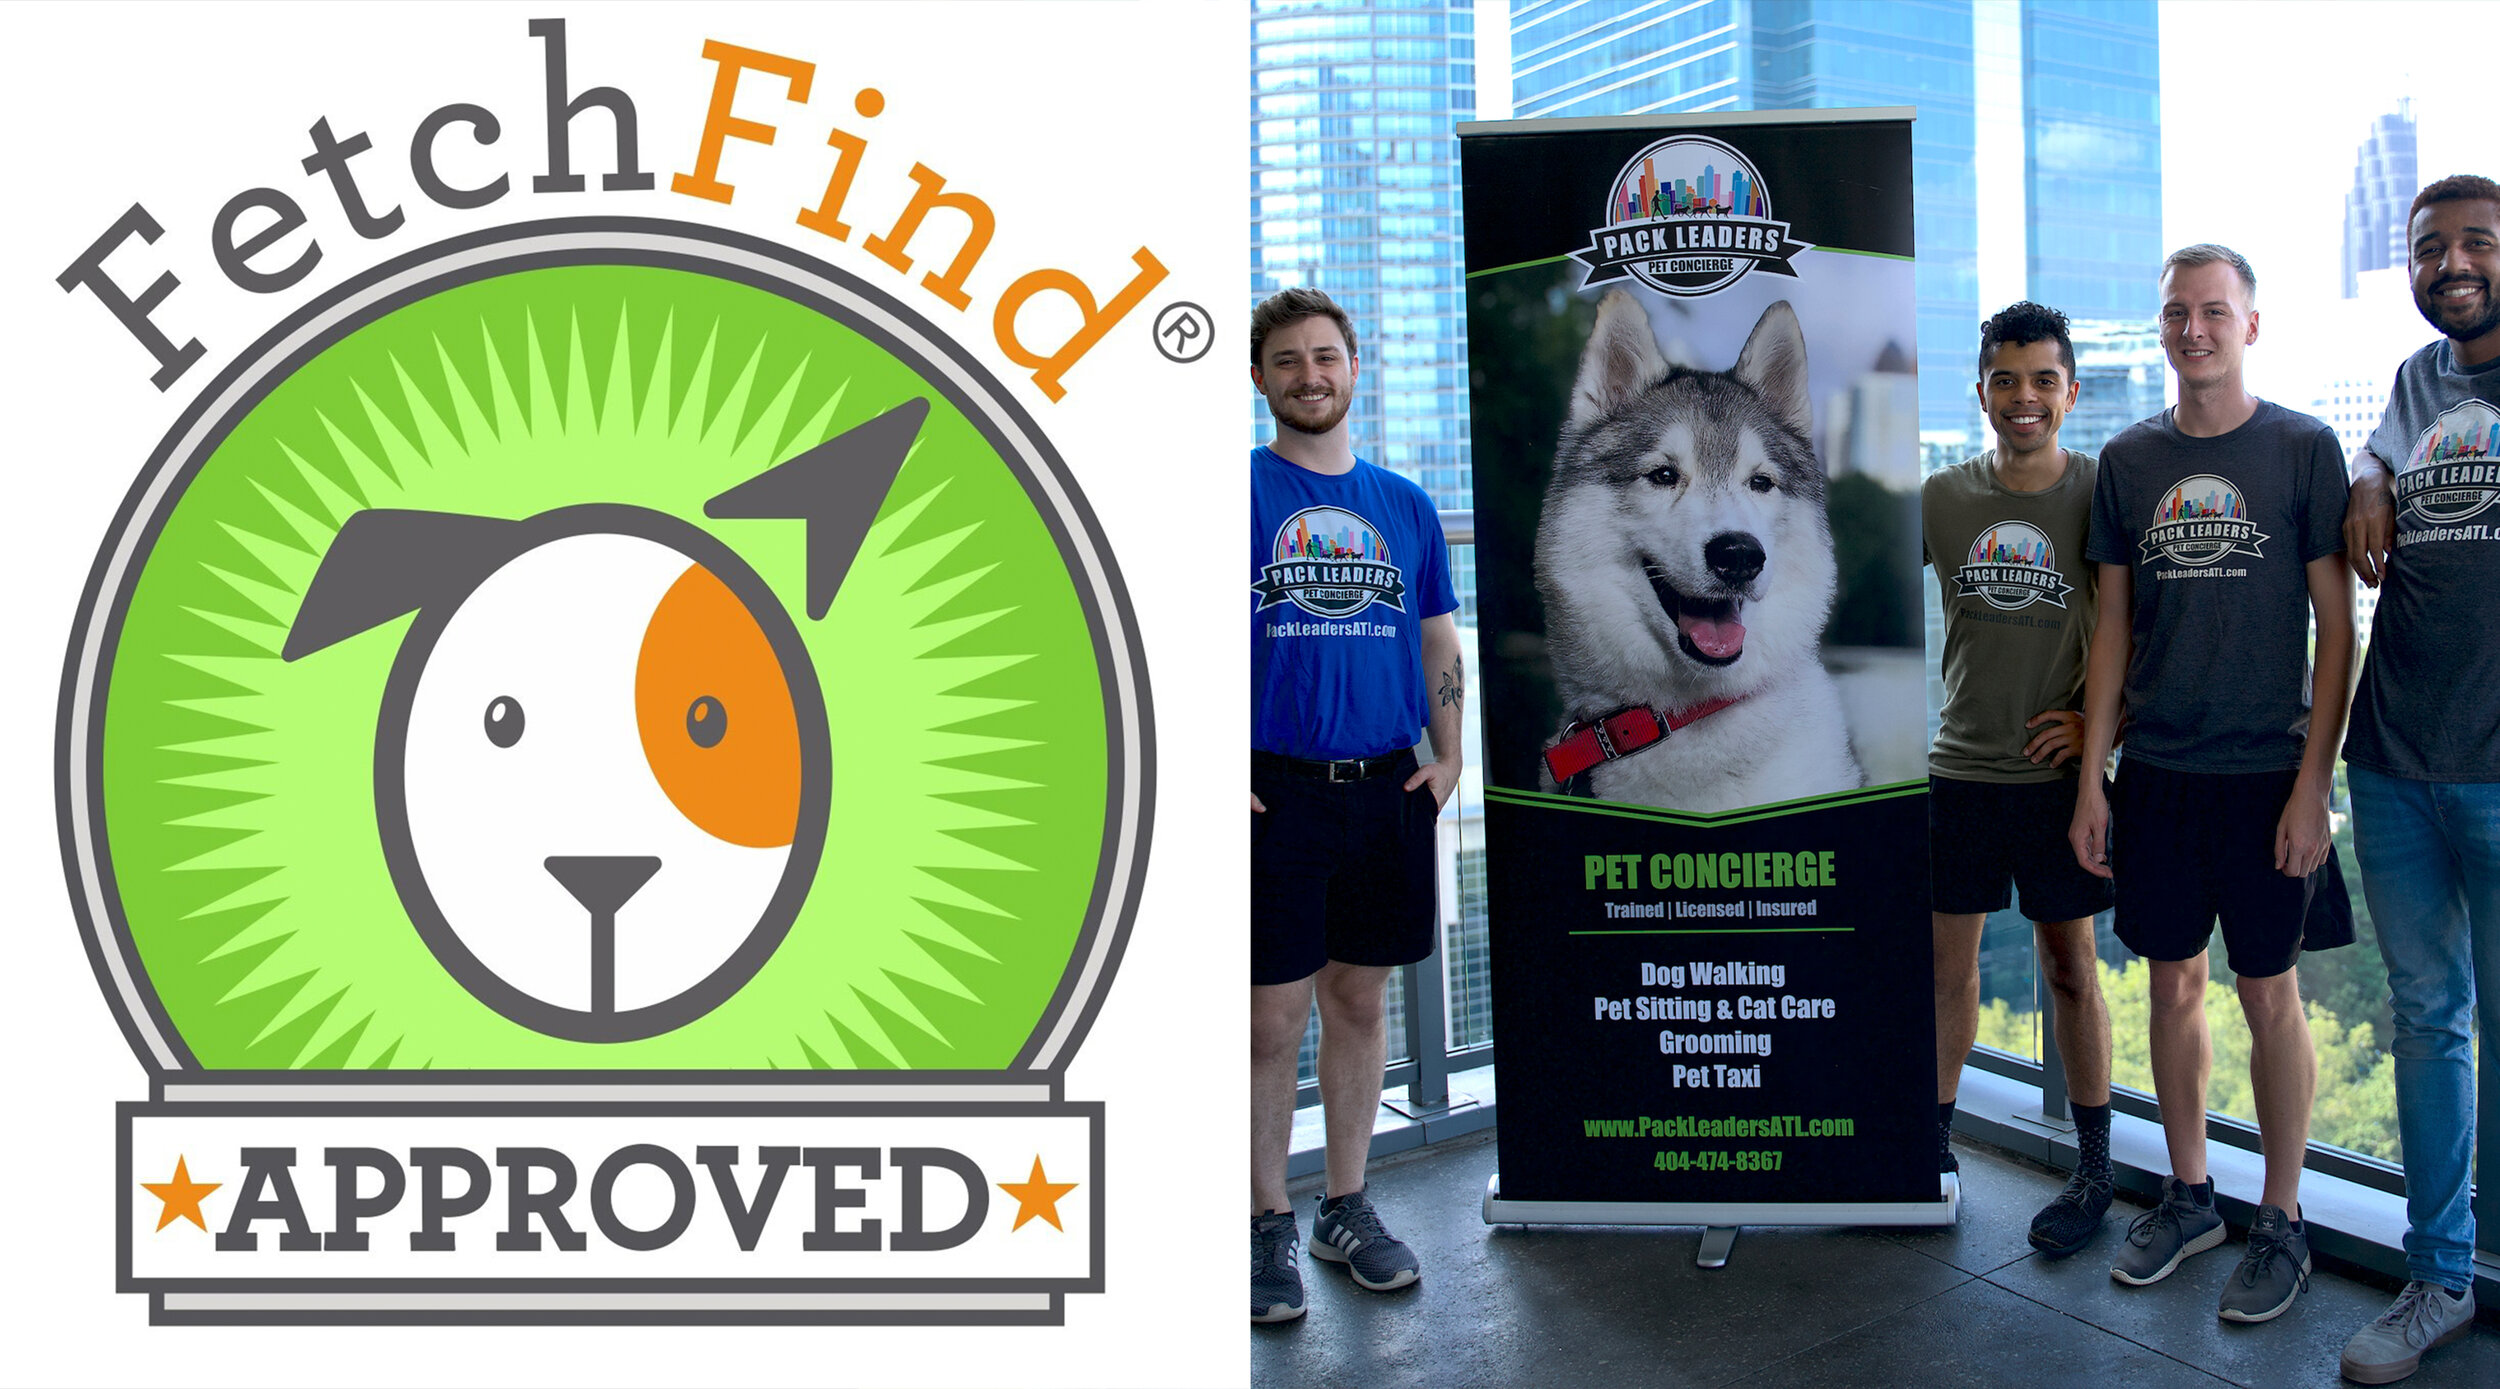 We Re Fetchfind Approved Pack Leaders Atl Dog Walking Cat Care And Pet Sitting Services